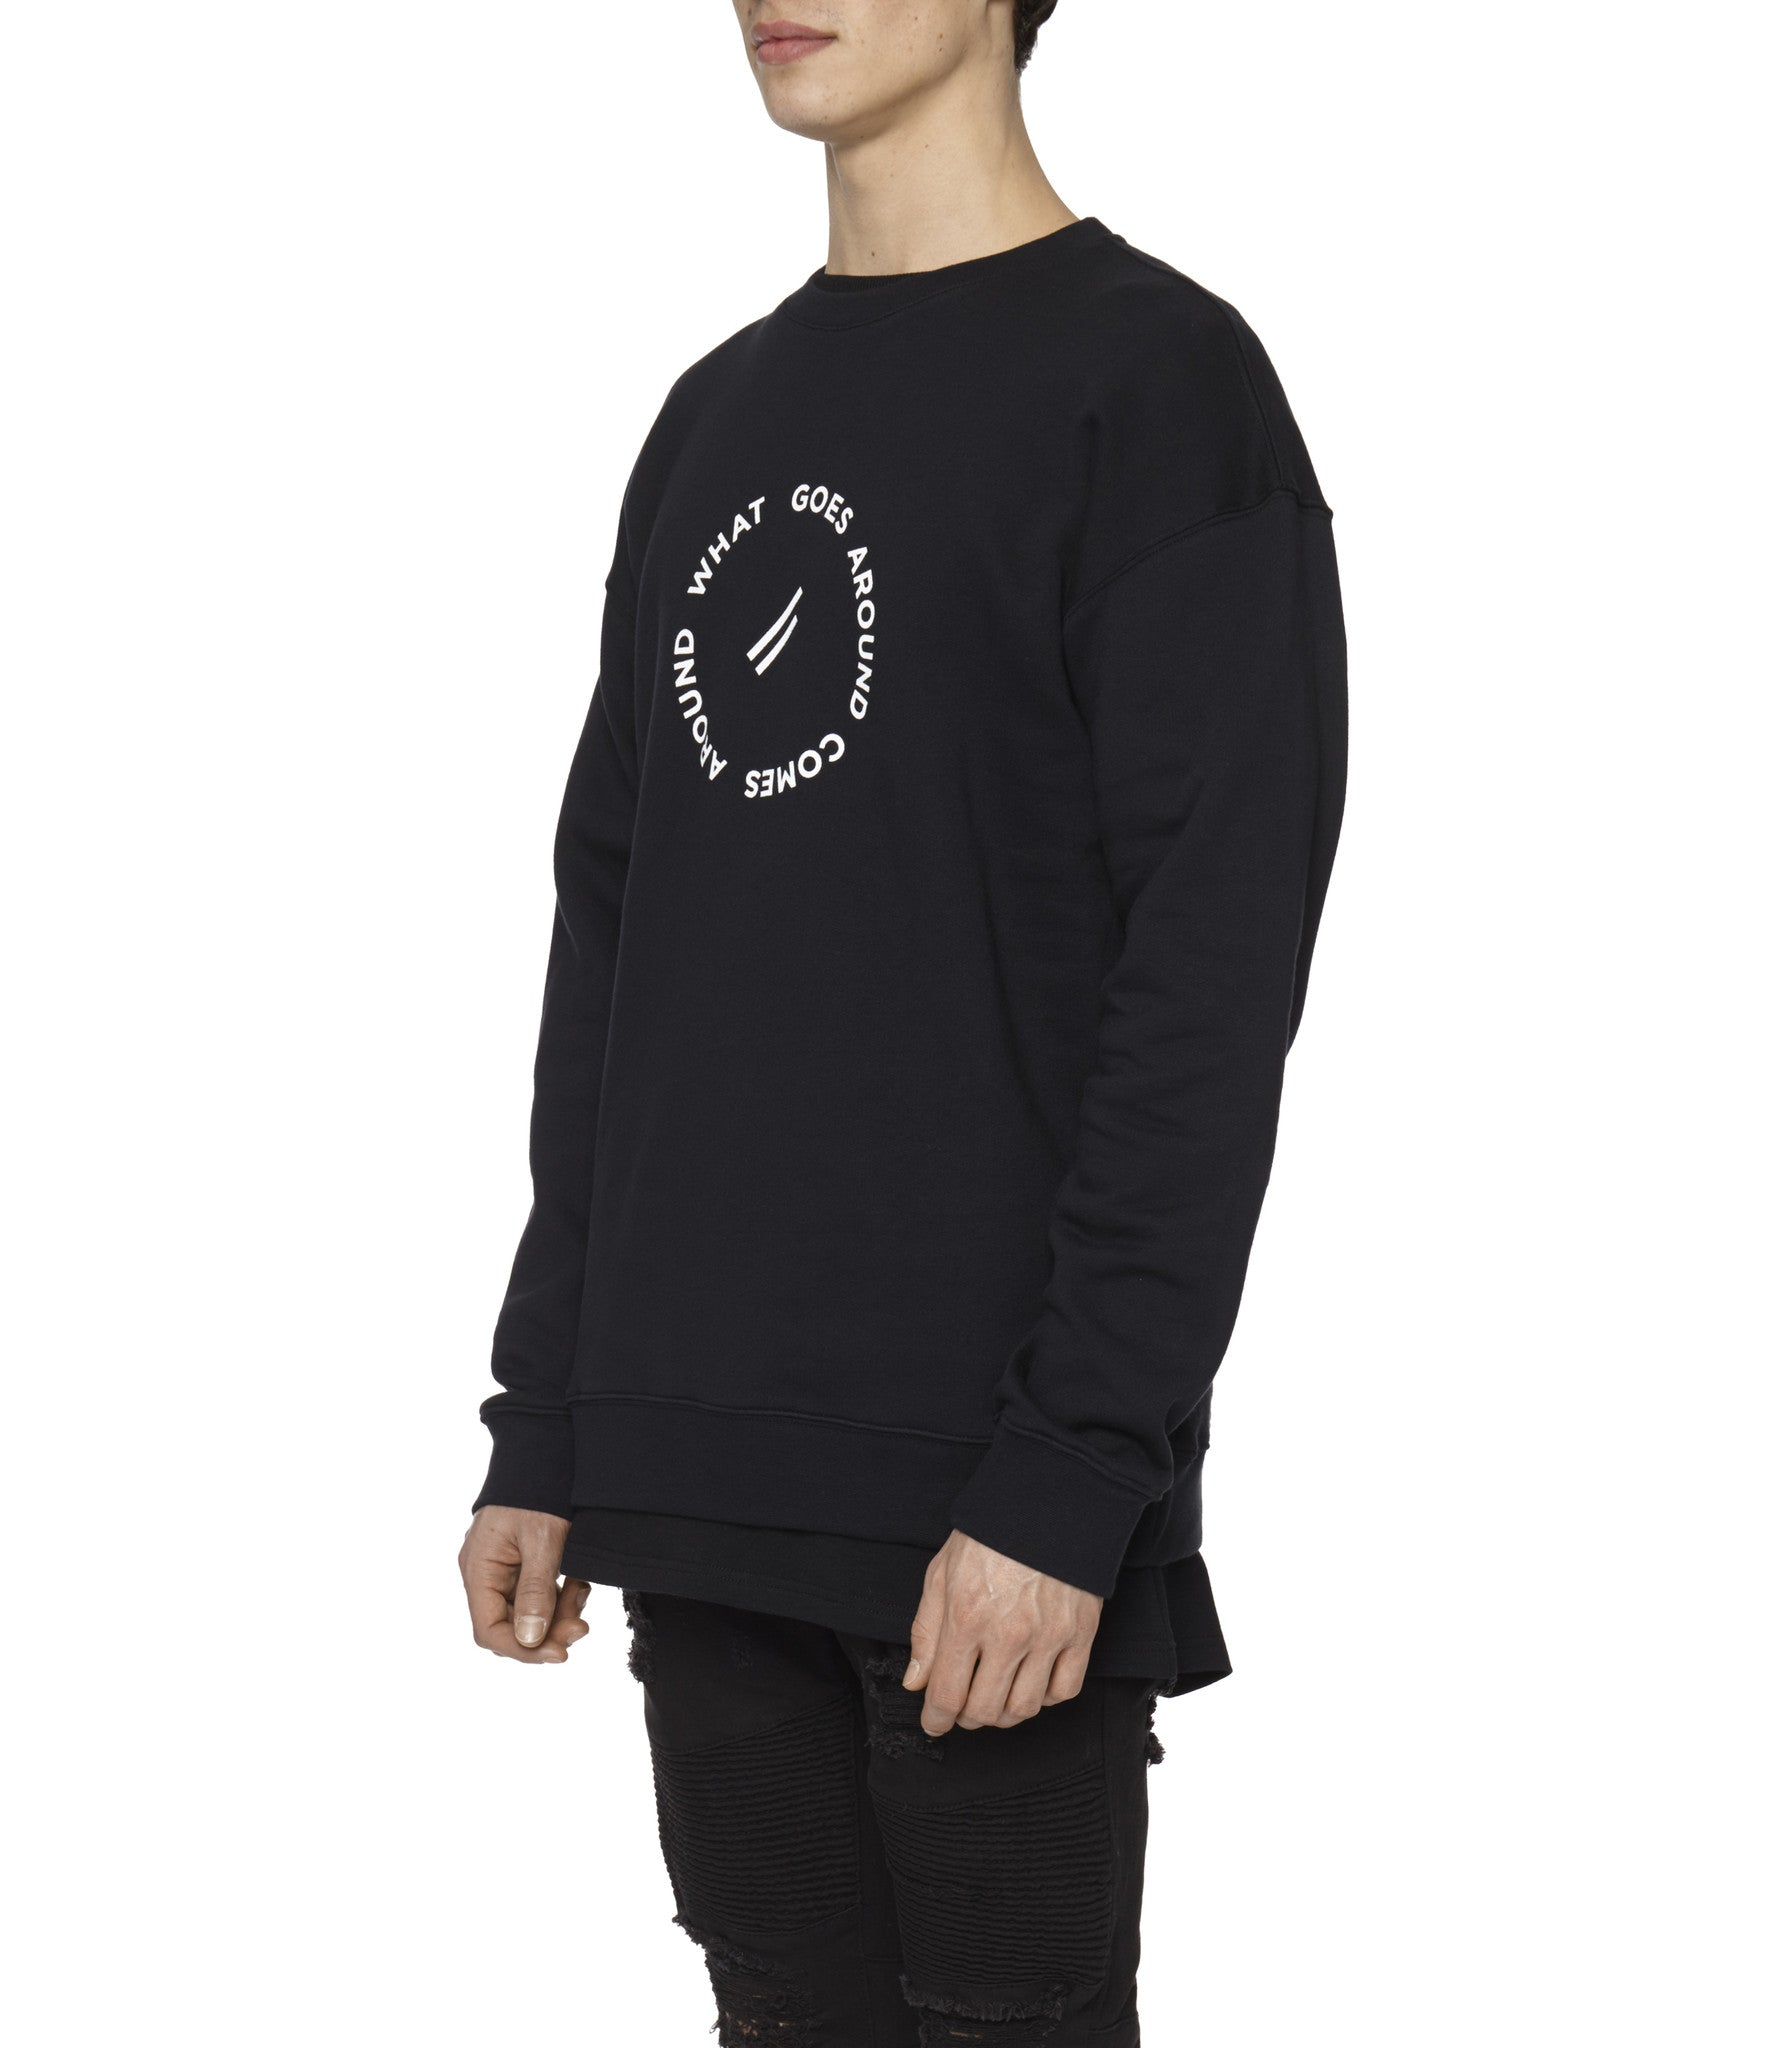 SW315 Circle Logo Printed Sweatshirt - Black - underated london - underatedco - 5